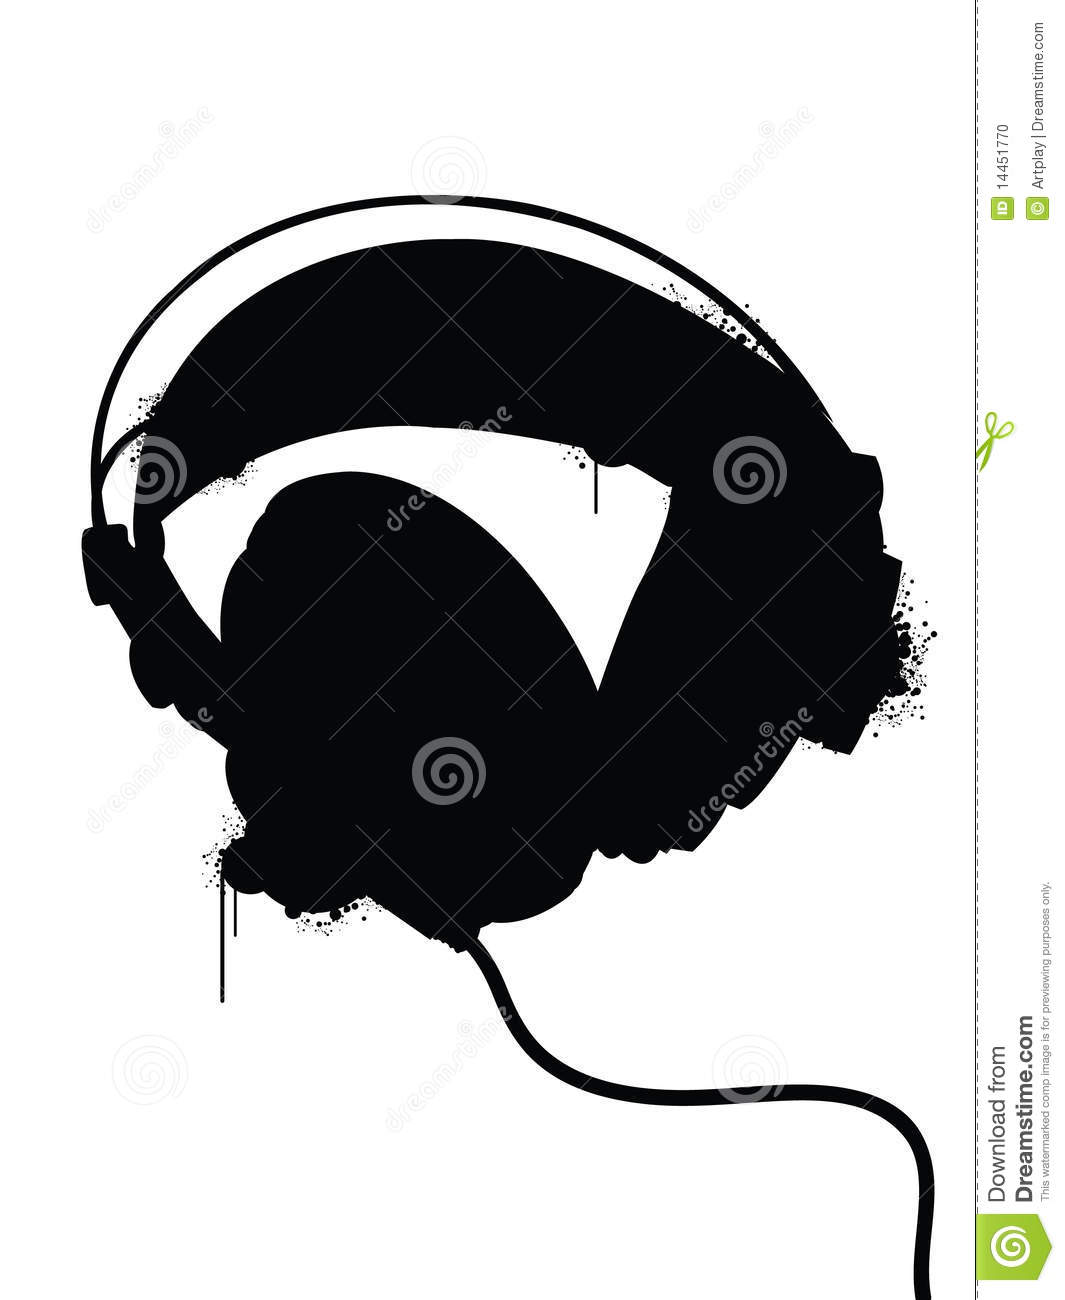 Headphones Silhouette Stock Photo - Image: 14451770